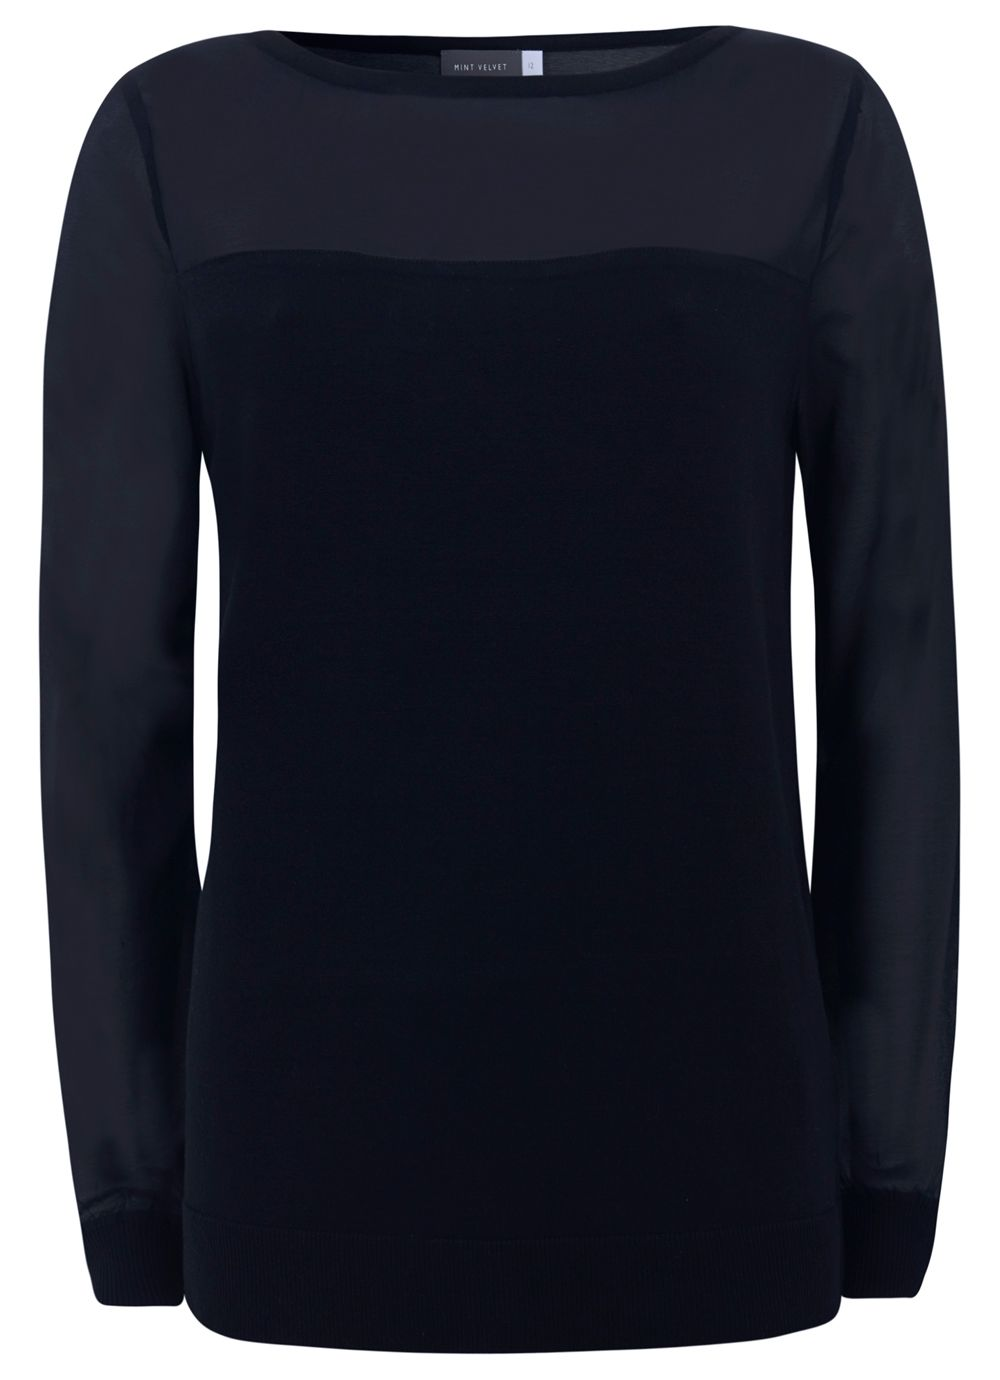 Navy Sheer Sleeve Knit